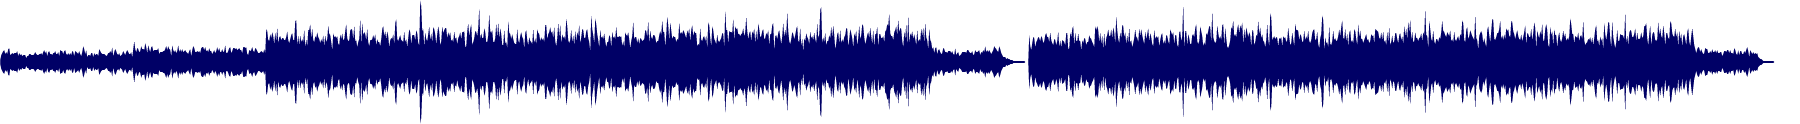 waveform of track #70621